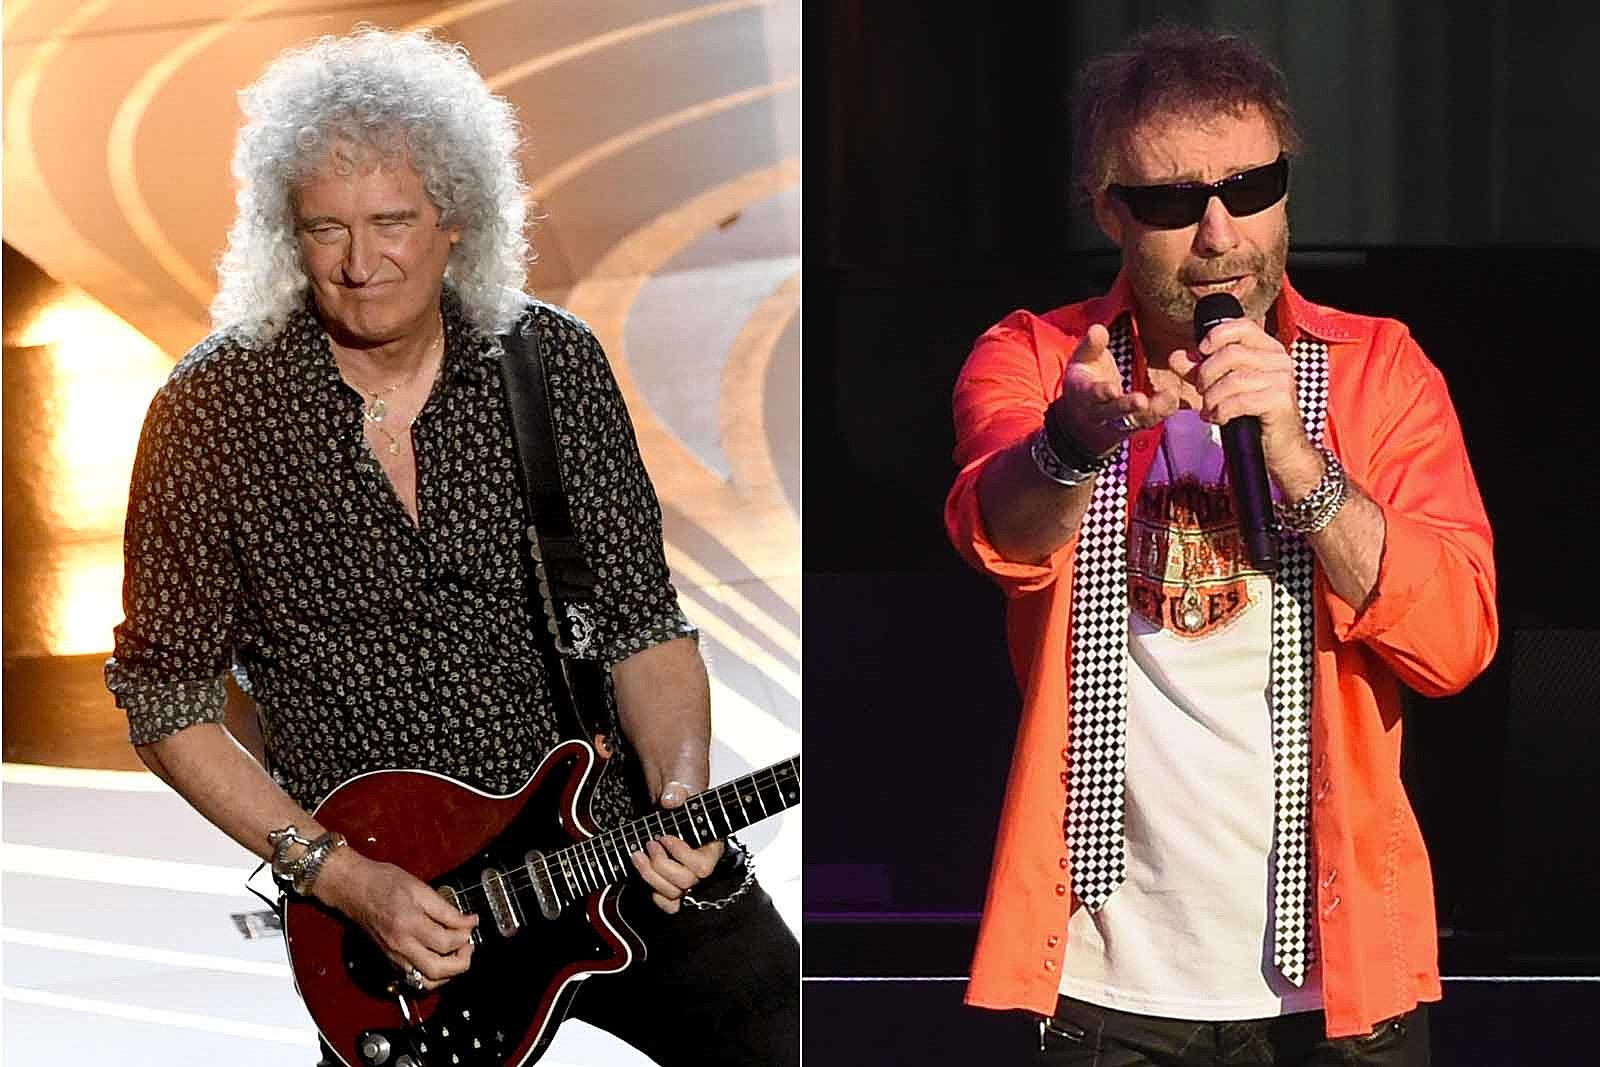 Queen Split With Paul Rodgers Because 'He Was His Own Man'